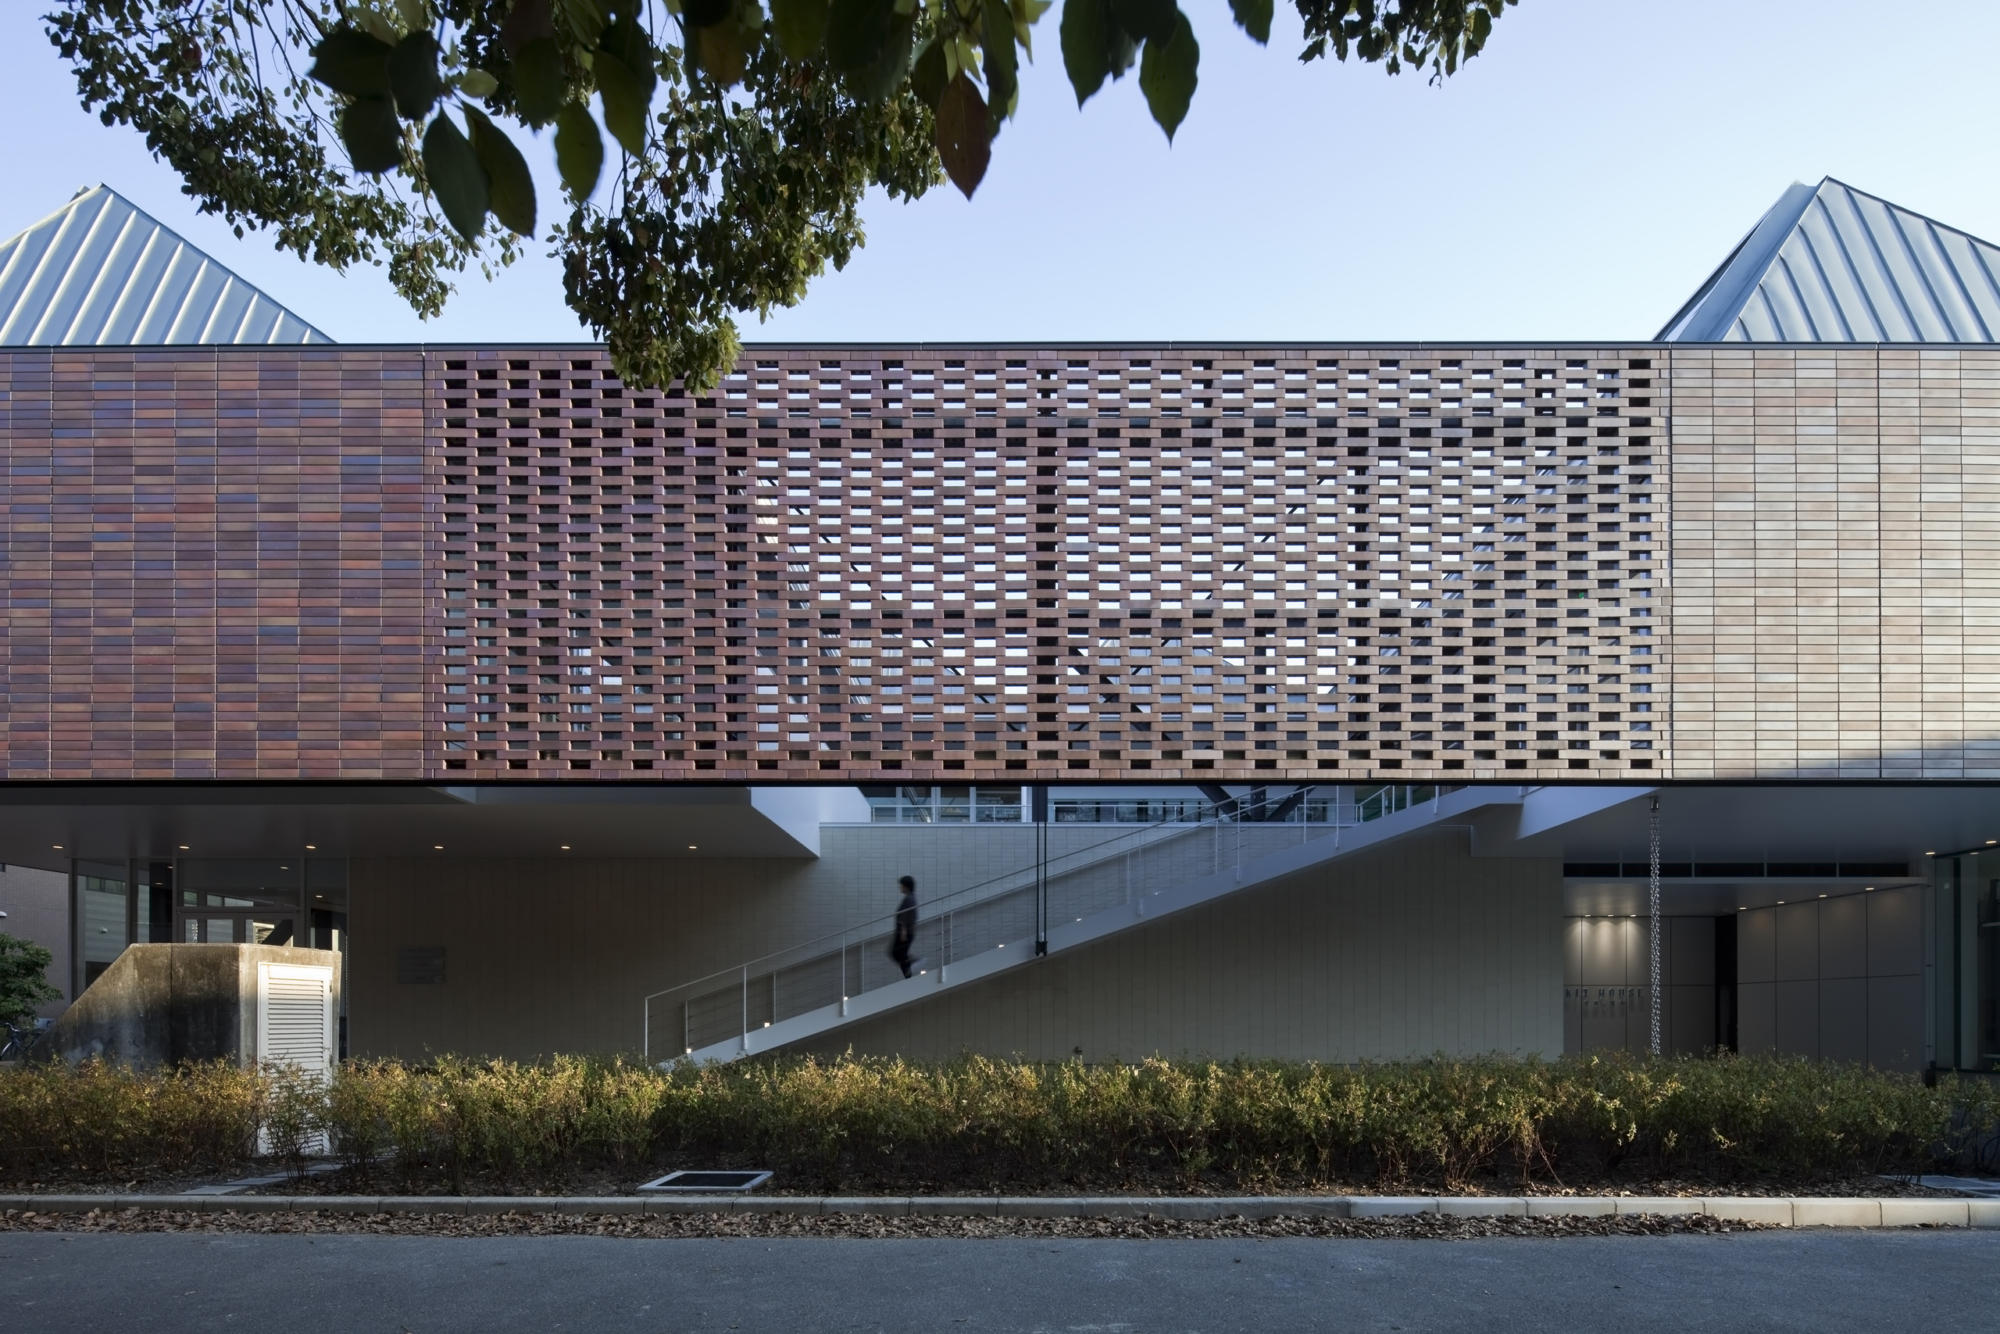 KIT HOUSE Student Union Building, Kyoto Institute of Technology | WORKS |